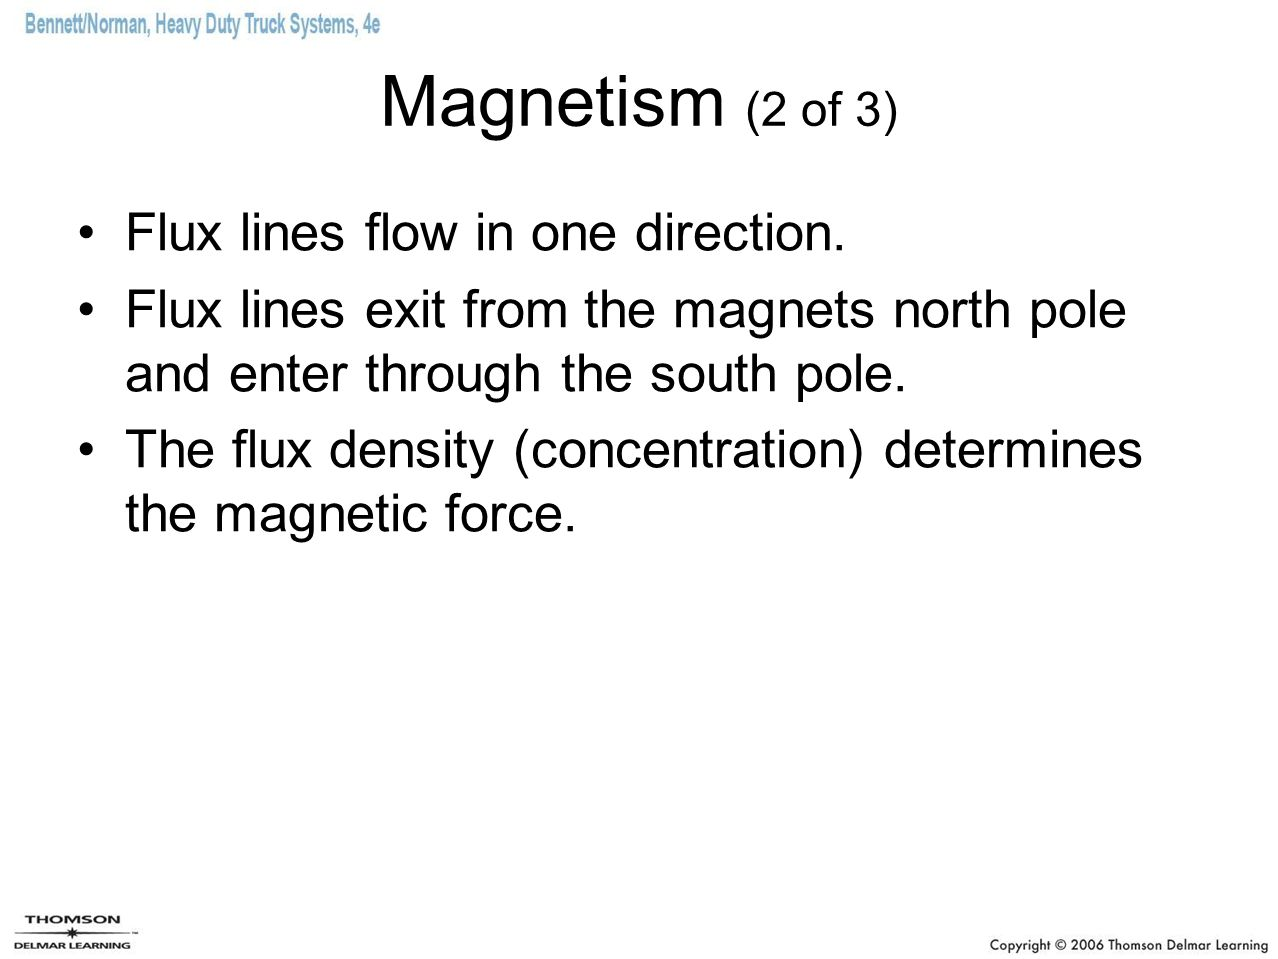 Magnetism (2 of 3) Flux lines flow in one direction.